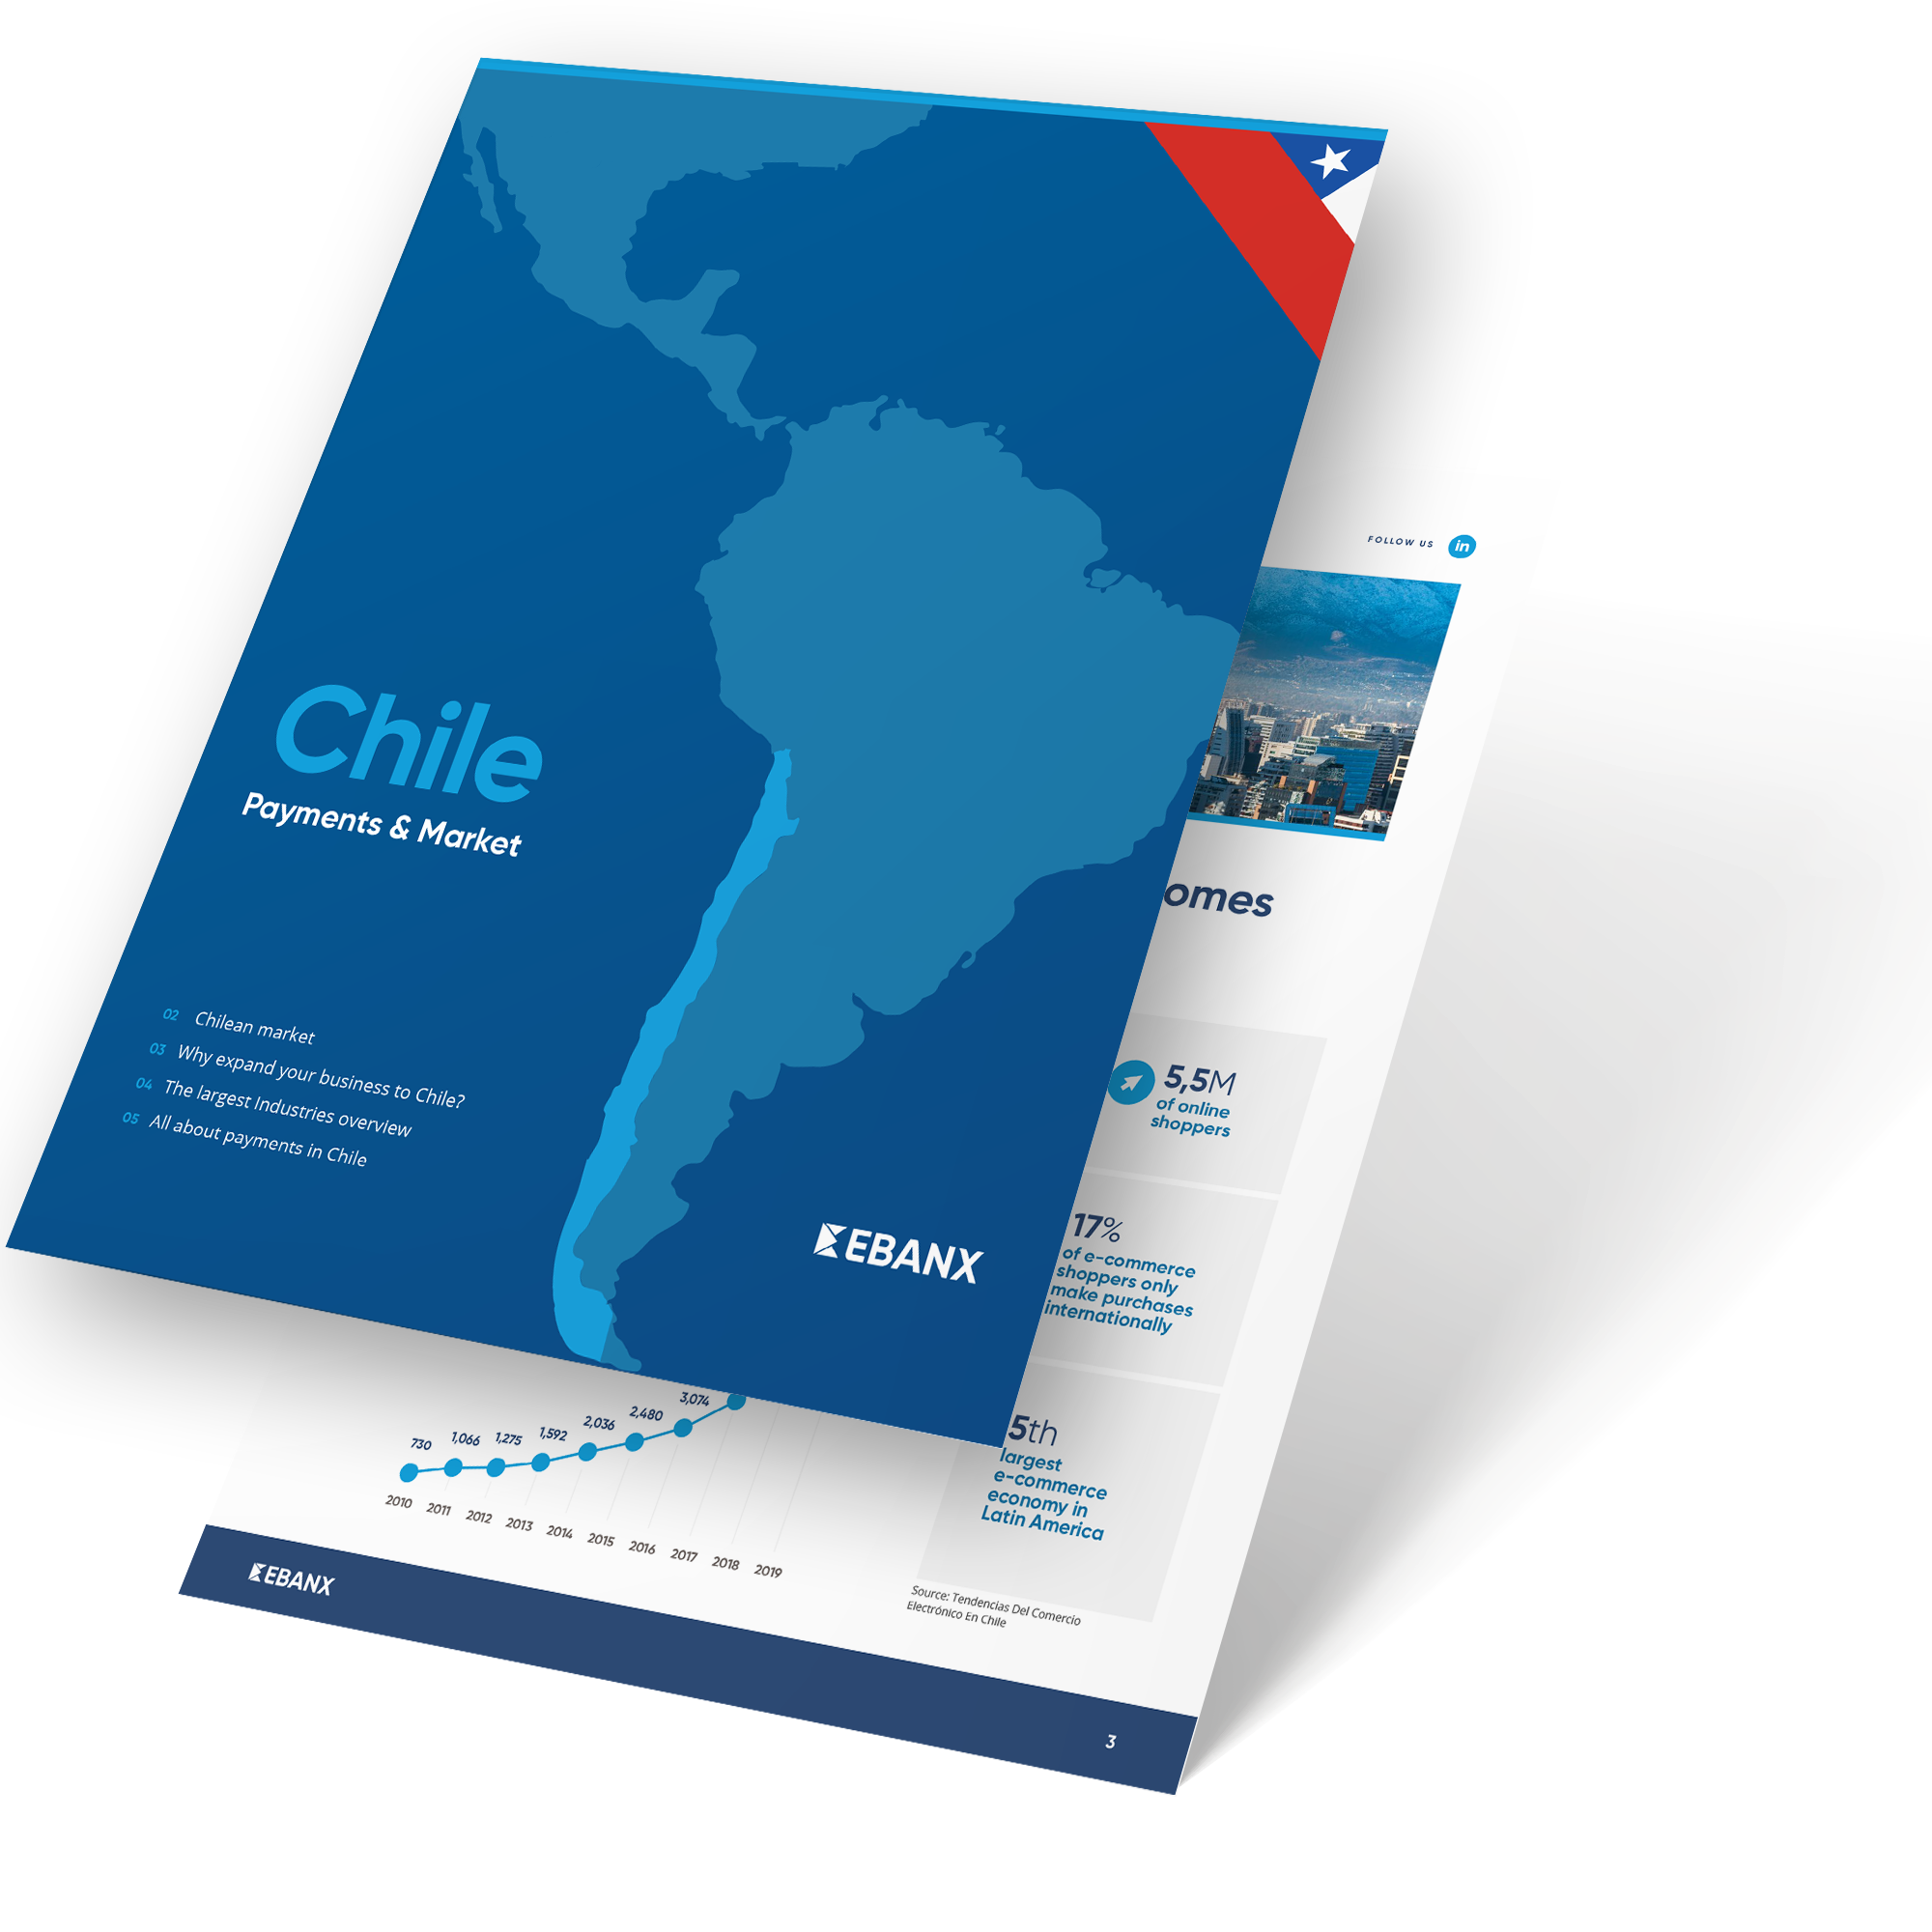 chile-payments-market